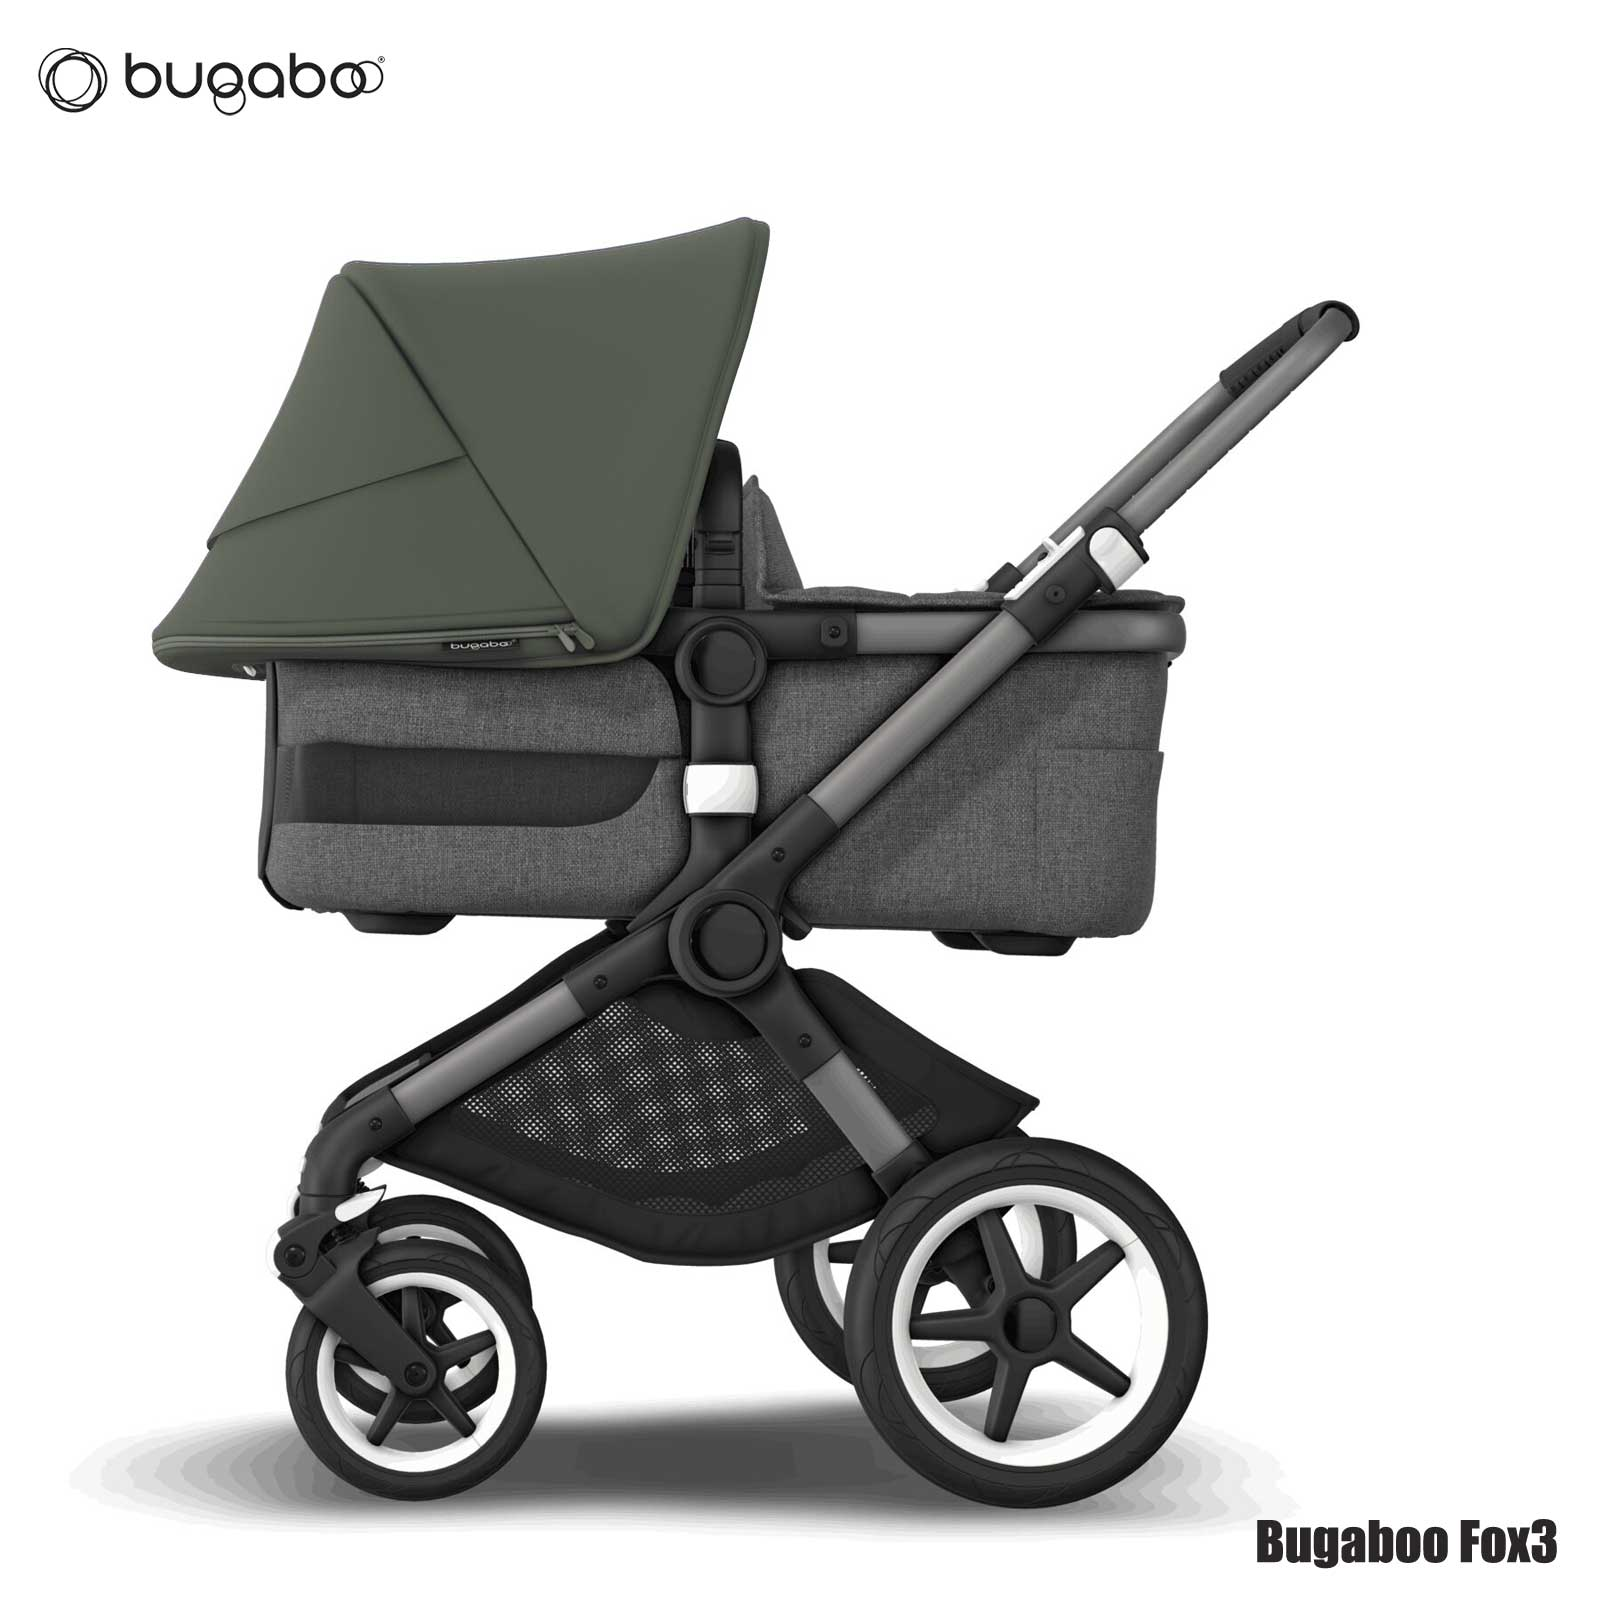 Bugaboo_Fox3_Graphite_Grey_mélange_Forest_green_CarryCot_WC2.jpg